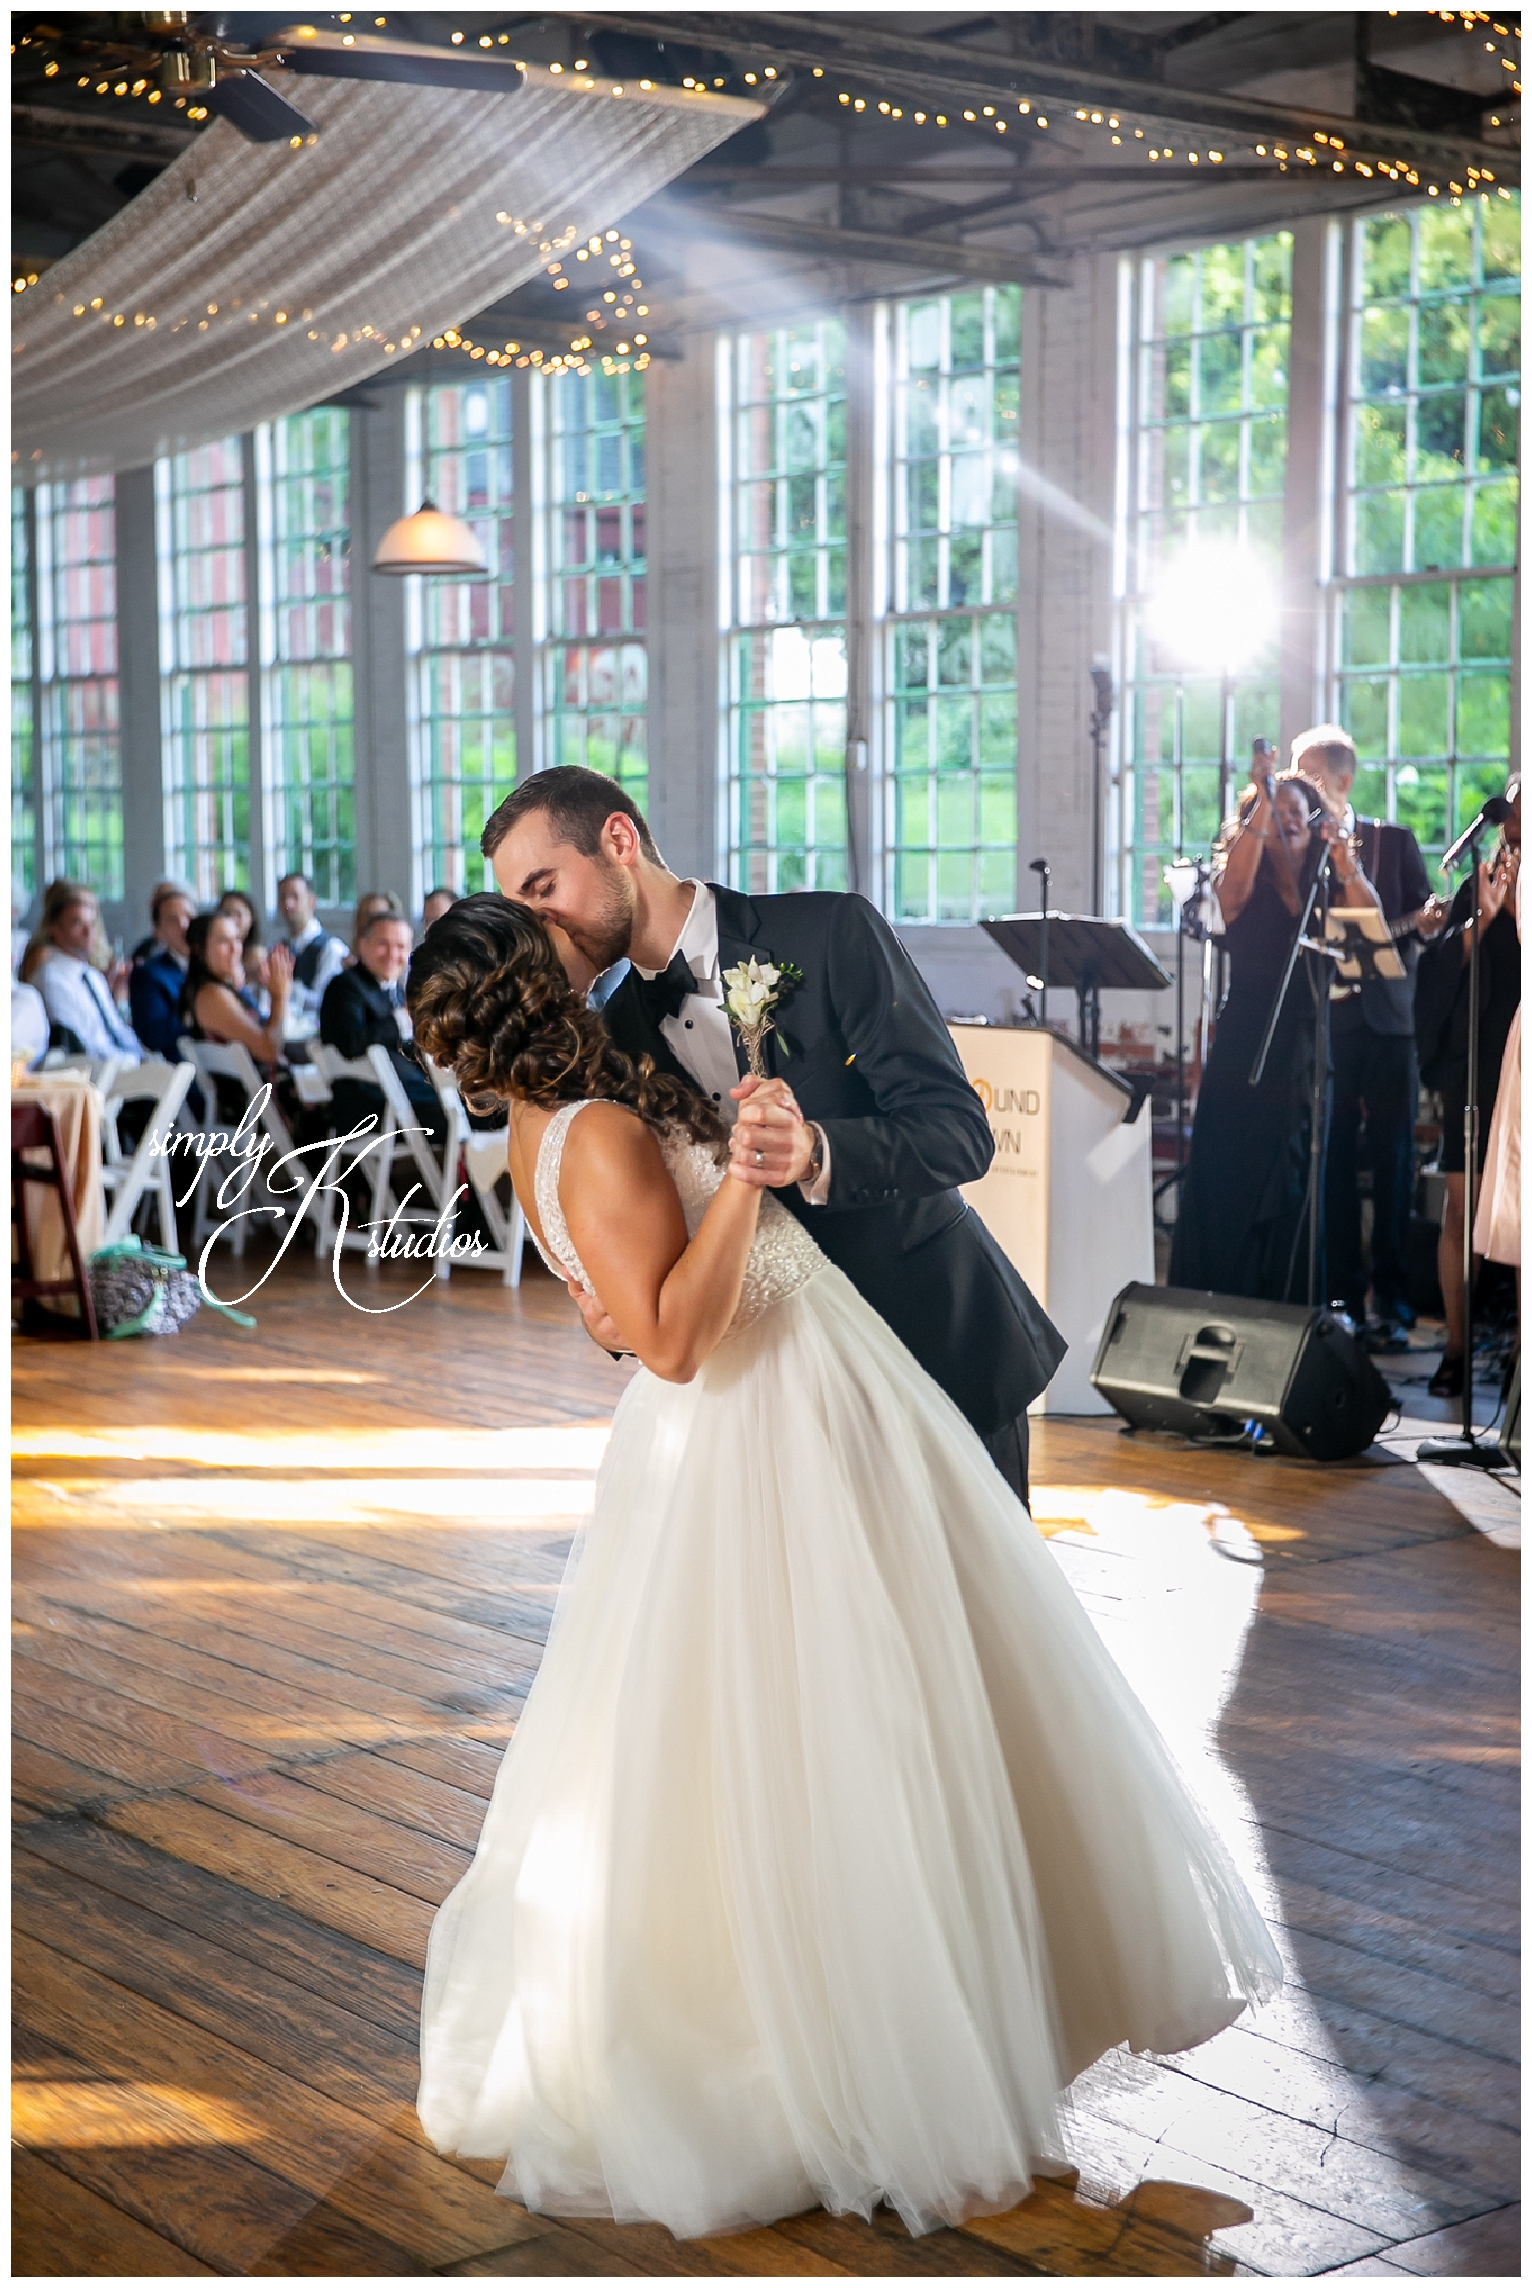 Wedding Photos at The Lace Factory.jpg